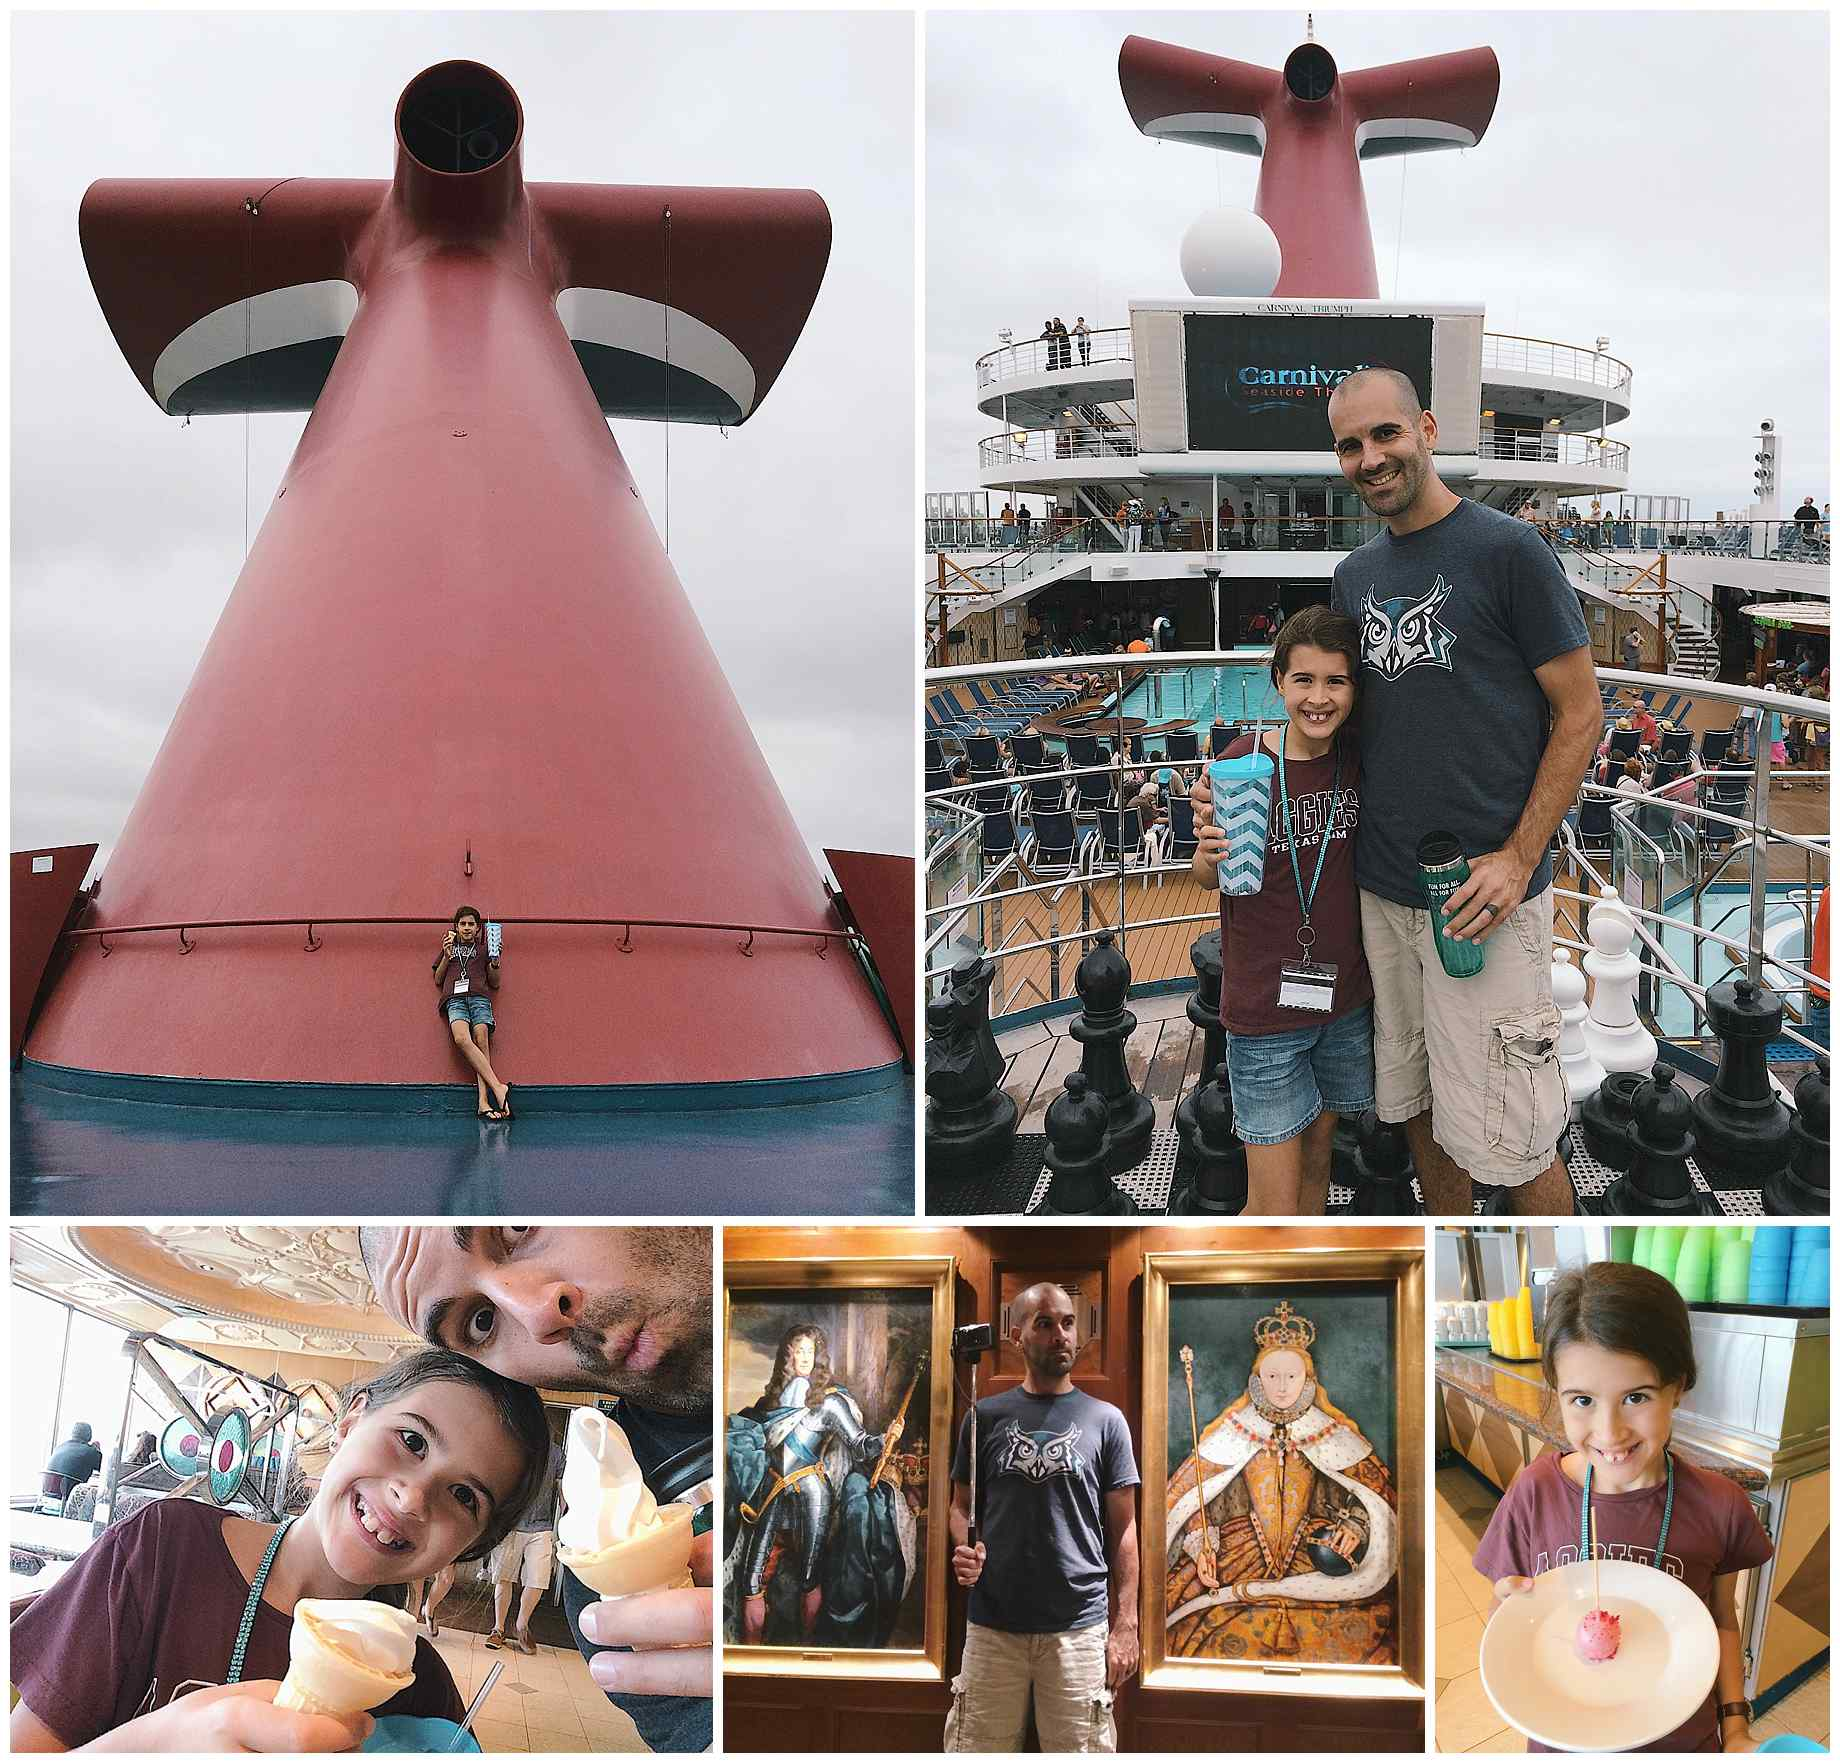 father-daughter-carnival-cruise-00003